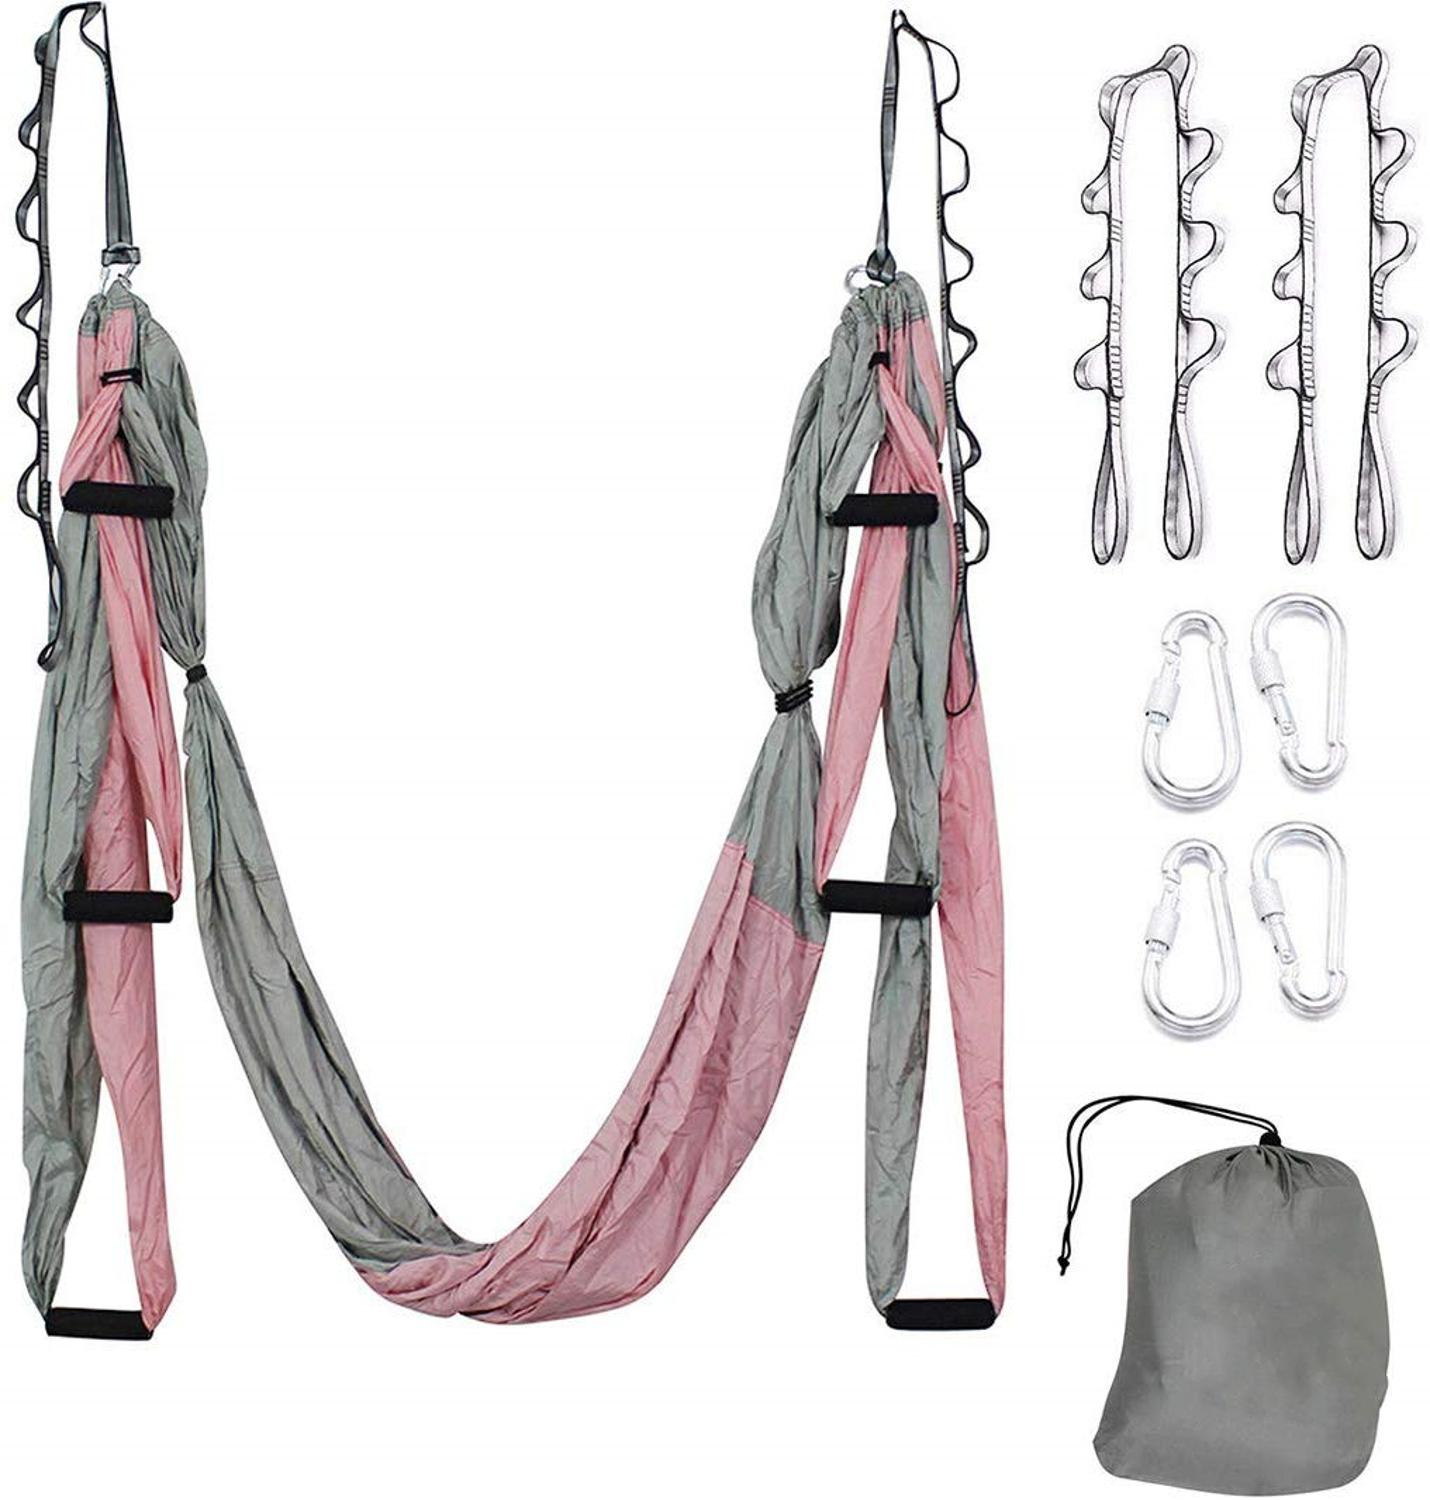 Aerial Yoga Hammock Set Antigravity Yoga Swing Ultra Strong For Air Yoga Inversion  Hanging  Exercises With 2 Extensions Straps